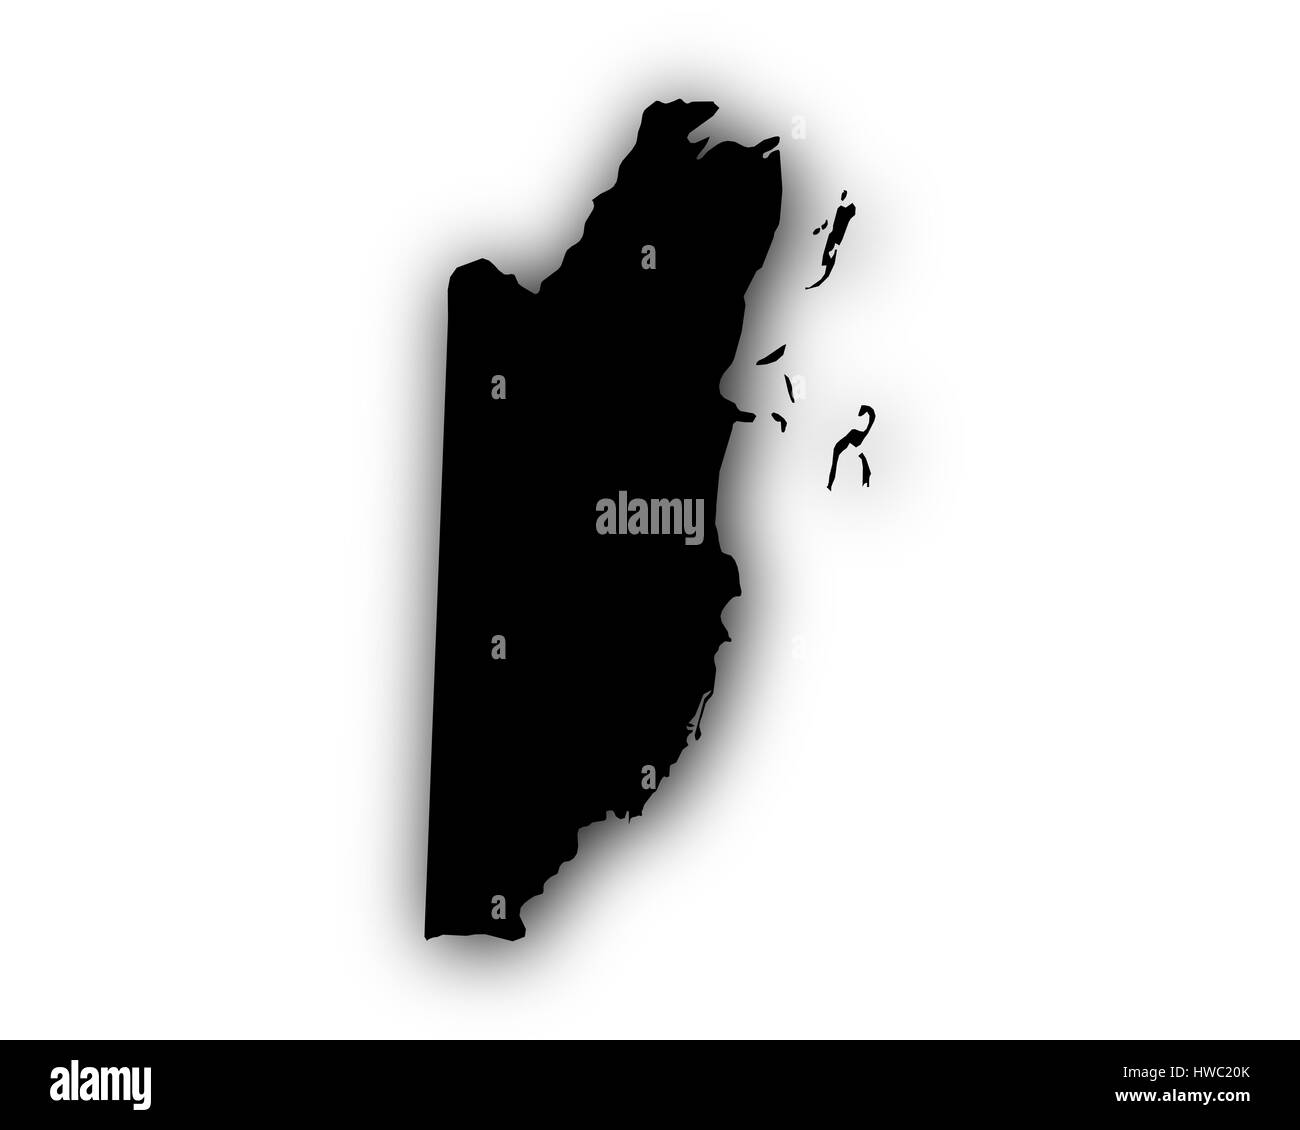 Map Belize Black and White Stock Photos & Images - Alamy